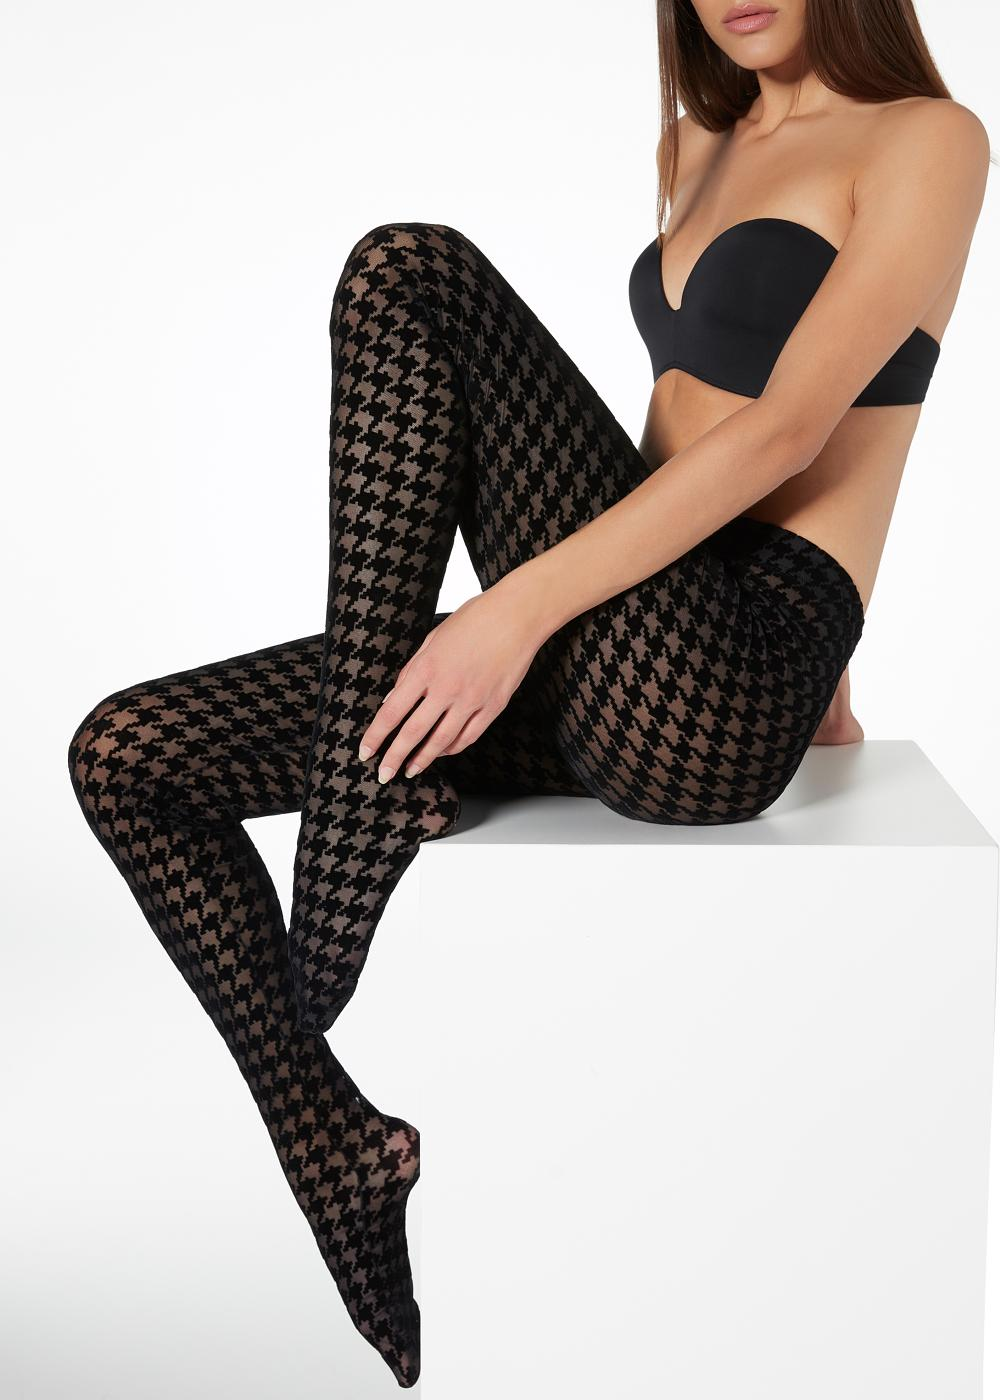 Collants de Rede Pied-de-poule Flocados